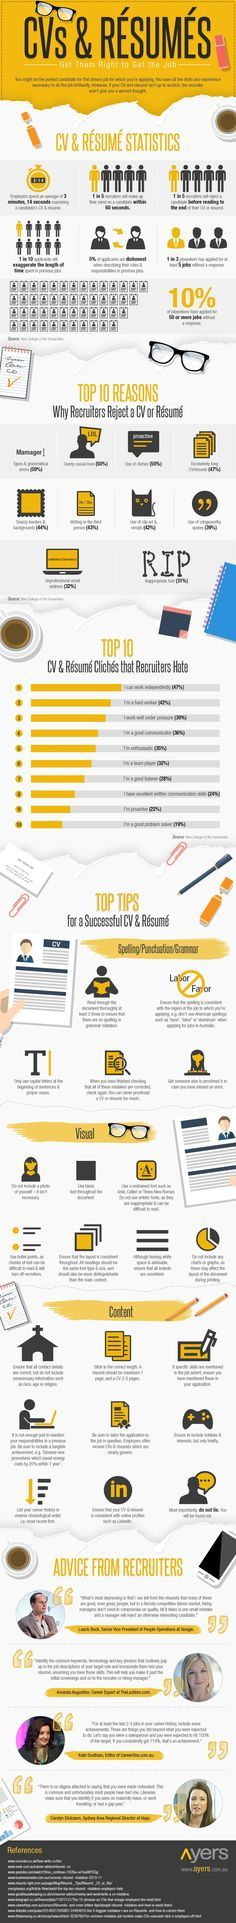 What Recruiters Should Look For In A Resume - Infographic - resumes that get jobs